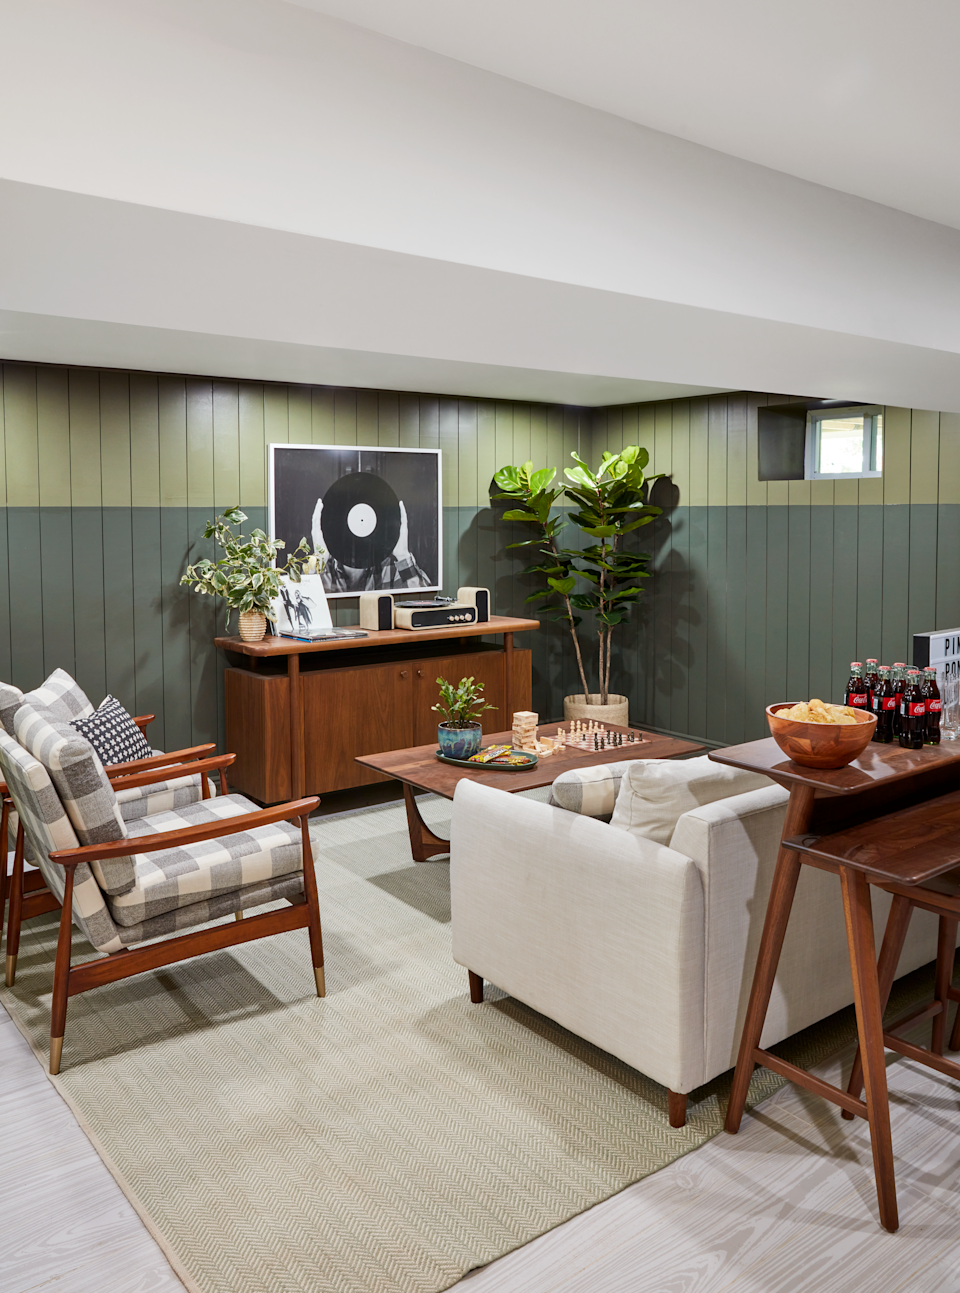 Real Simple Home, Basement Lounge with green walls and sofa